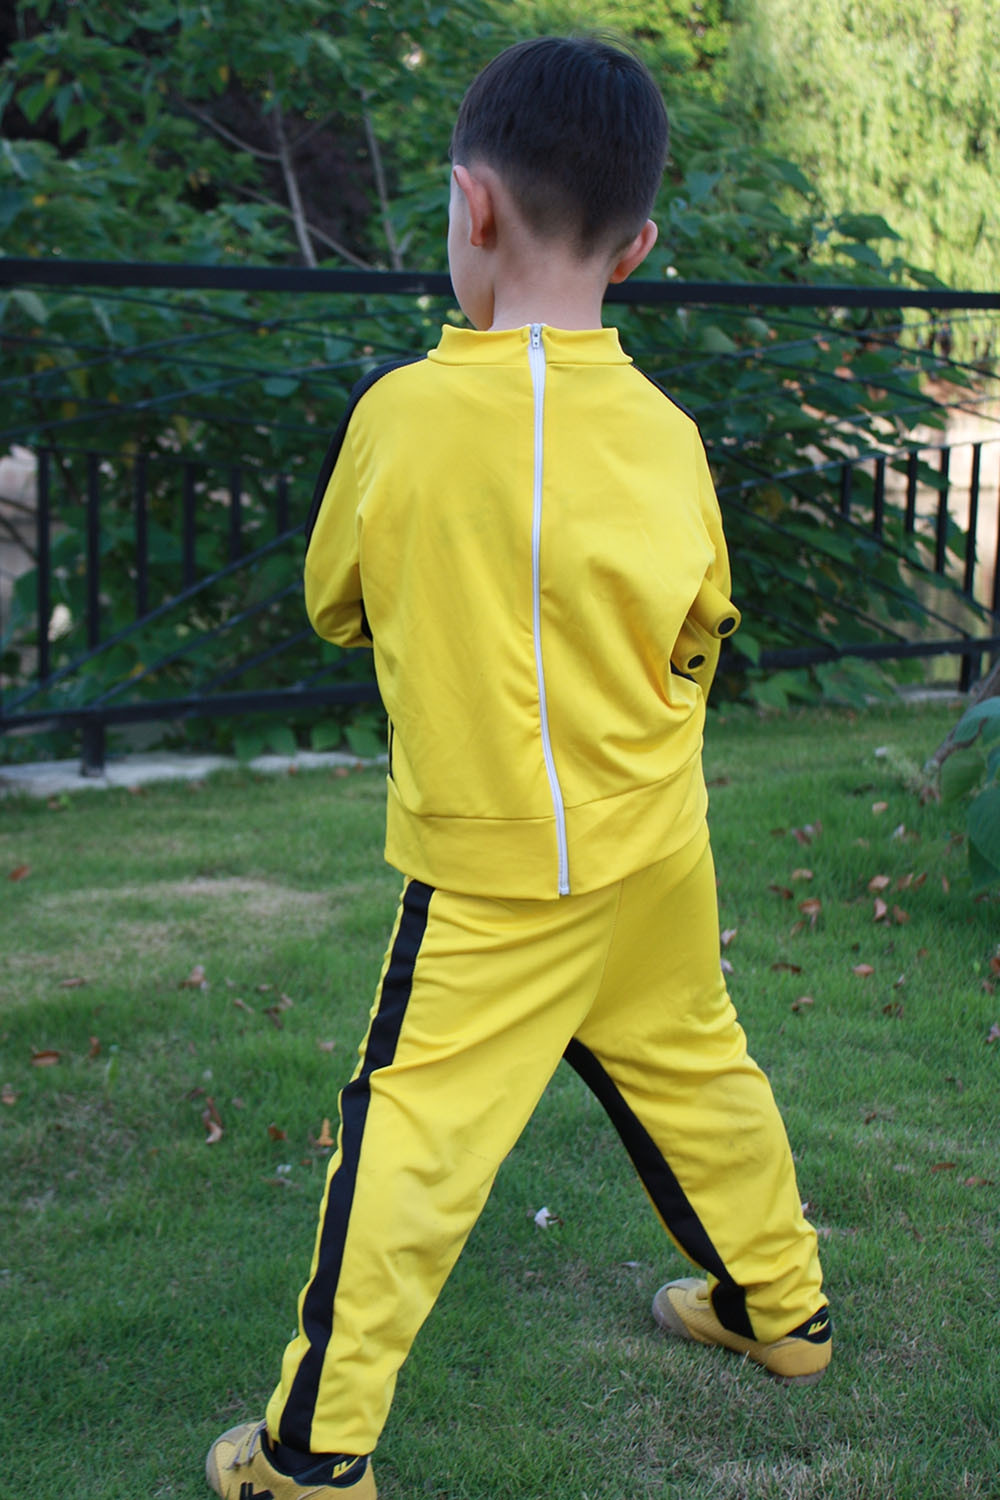 5589f27ad More Views. Customized Child and Adult Bruce Lee Yellow Costume Game of  Death